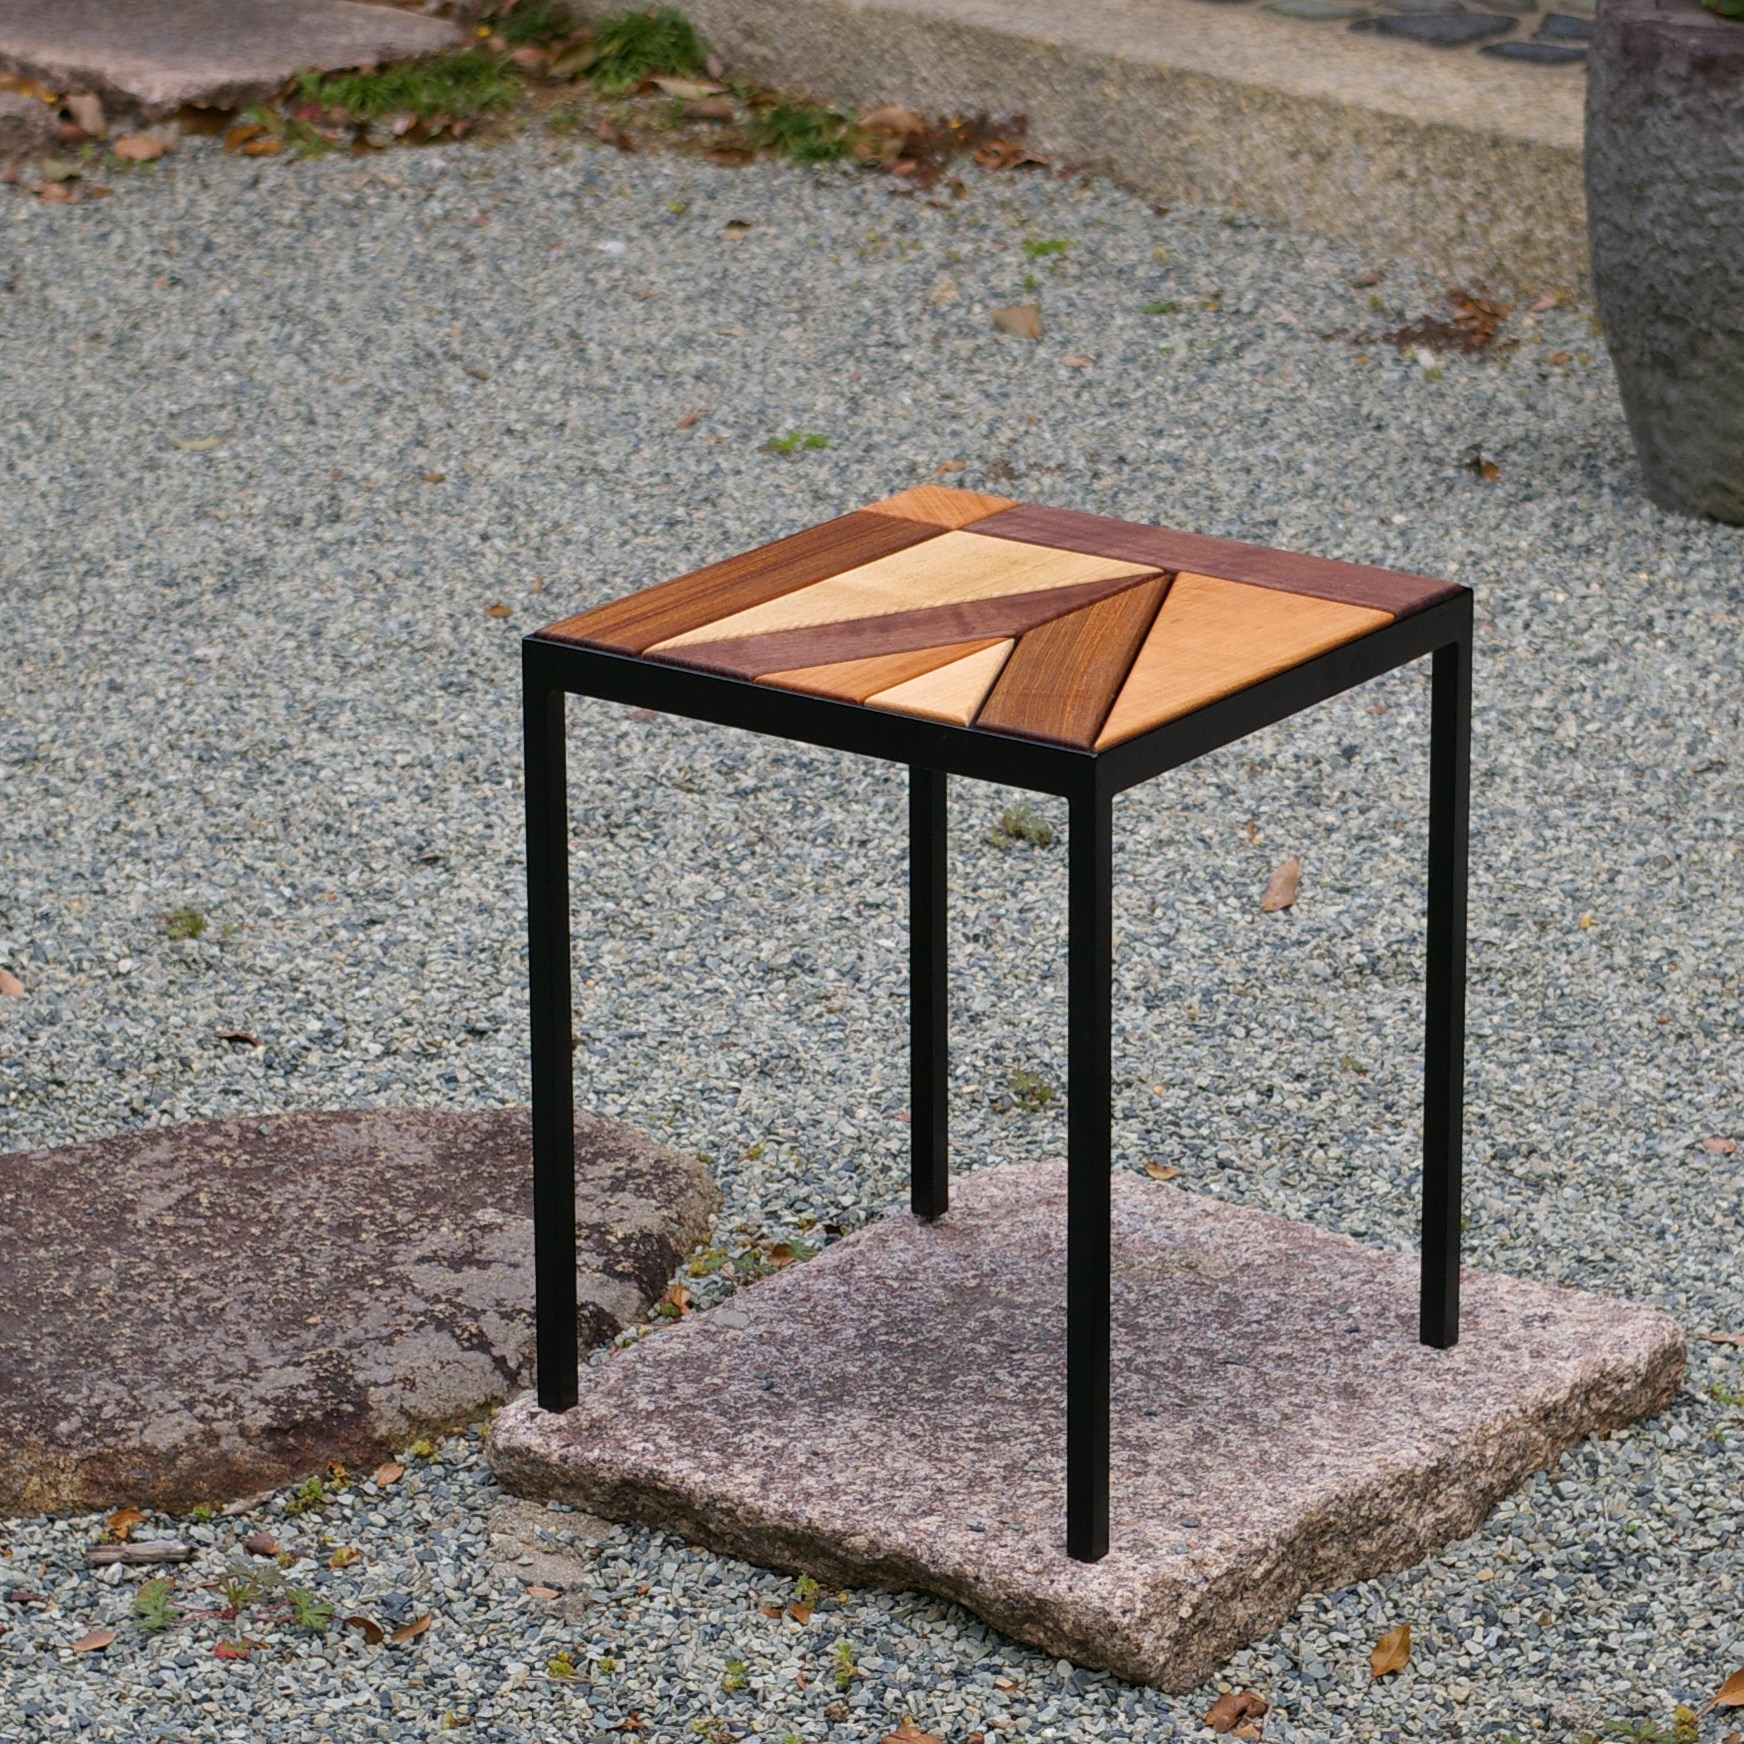 MOSAIC STOOL / wedge